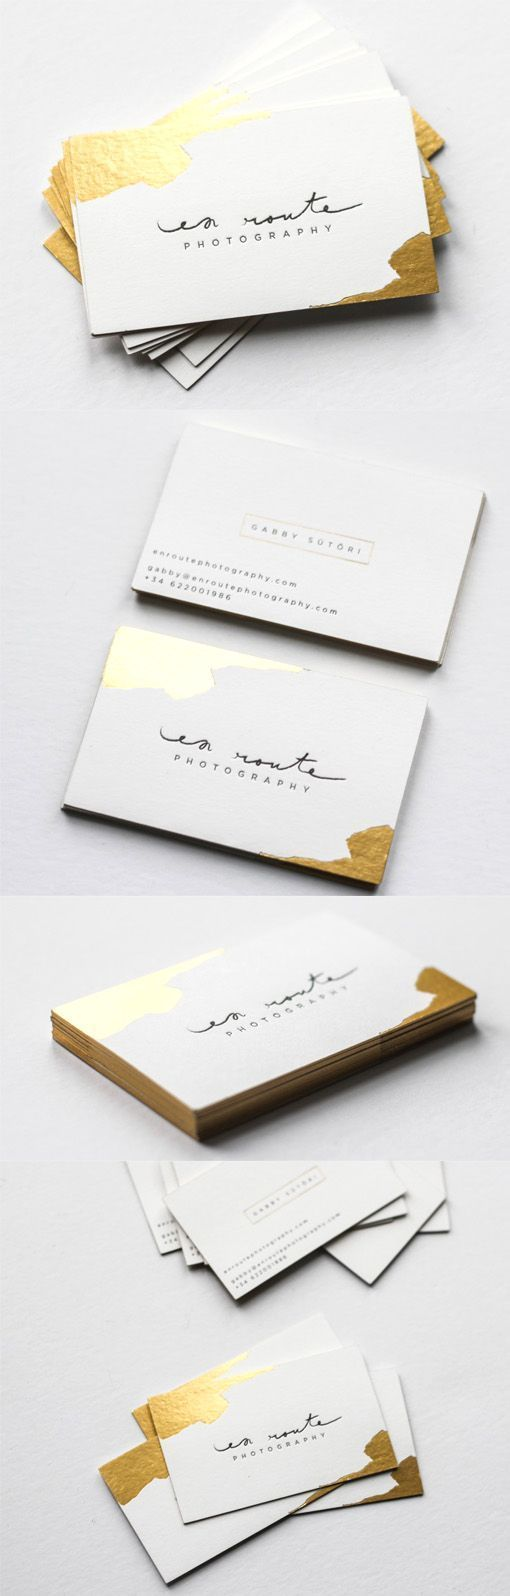 Best 25 business card design ideas on pinterest business cards en route photography business card i love the use of the gold foil magicingreecefo Images